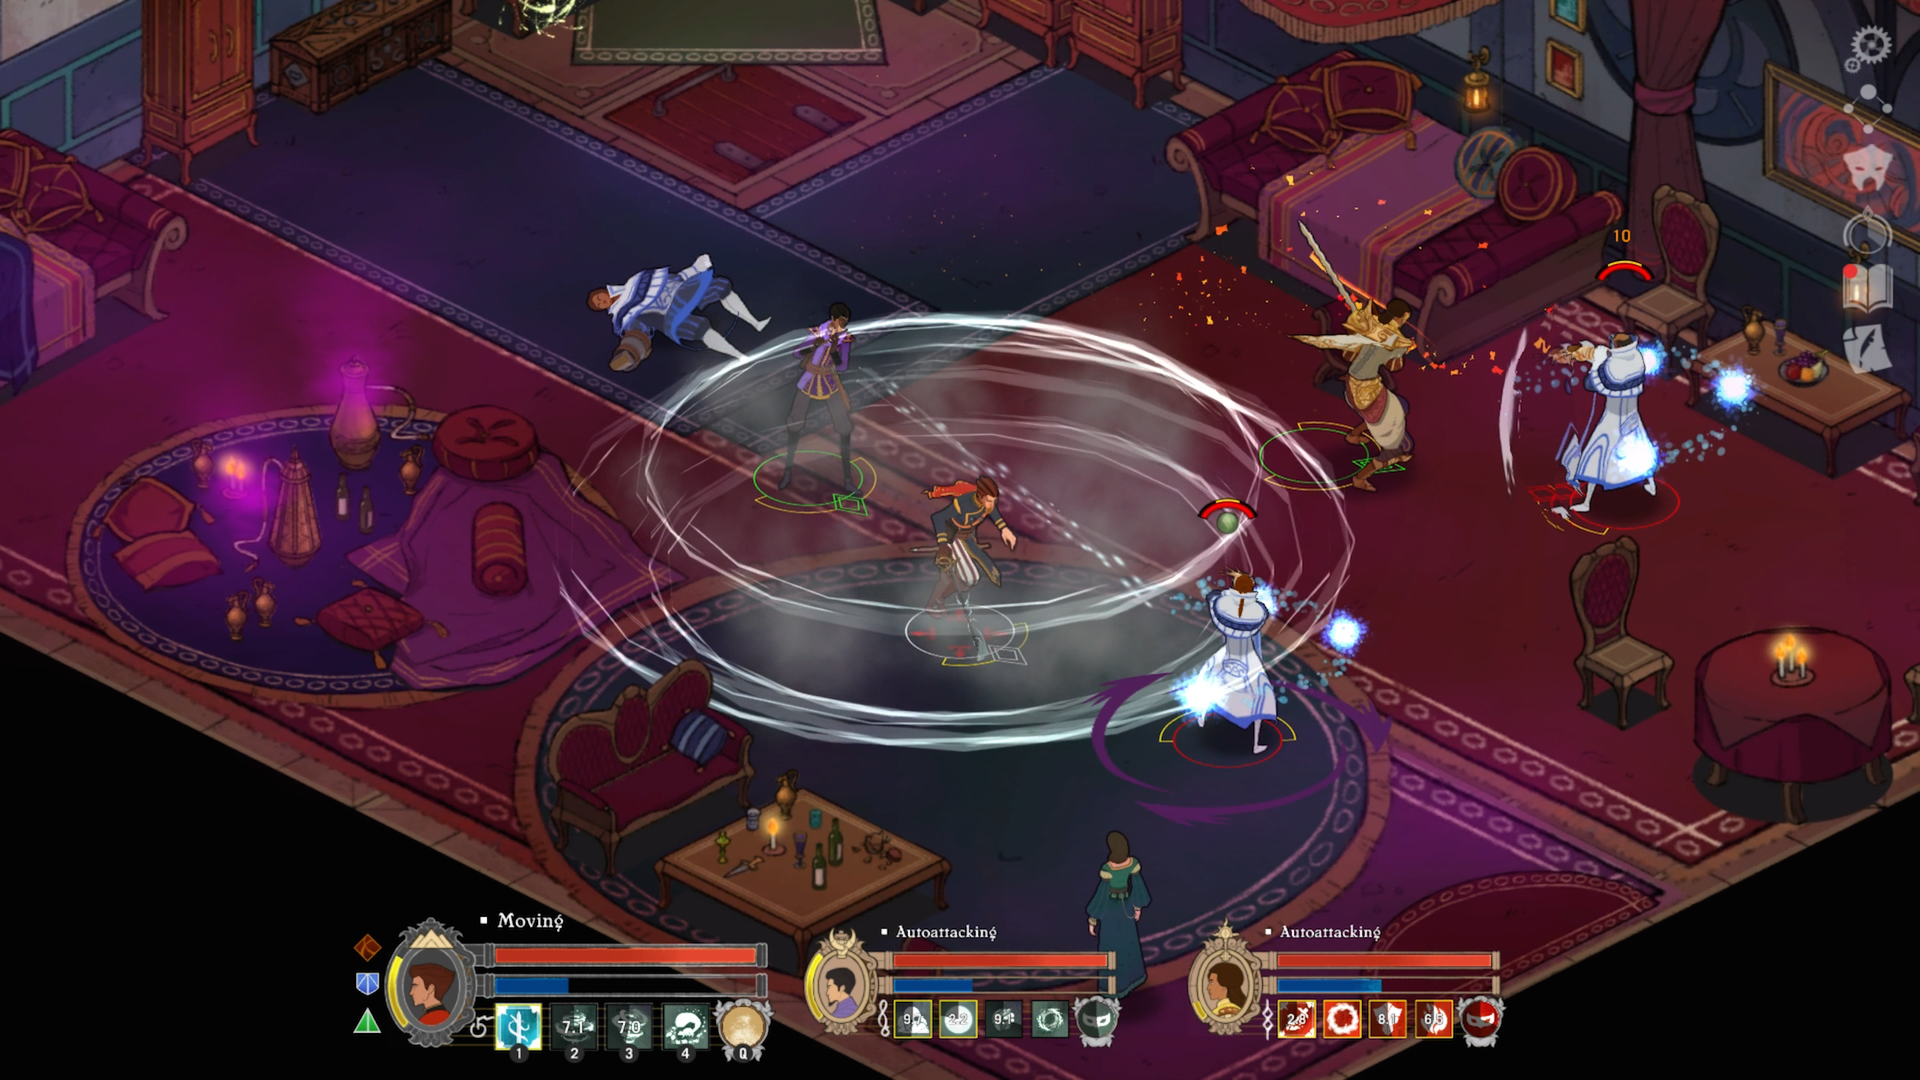 masquerada-songs-and-shadows-witching-hour-studios-singapore-indie-game-battle-system